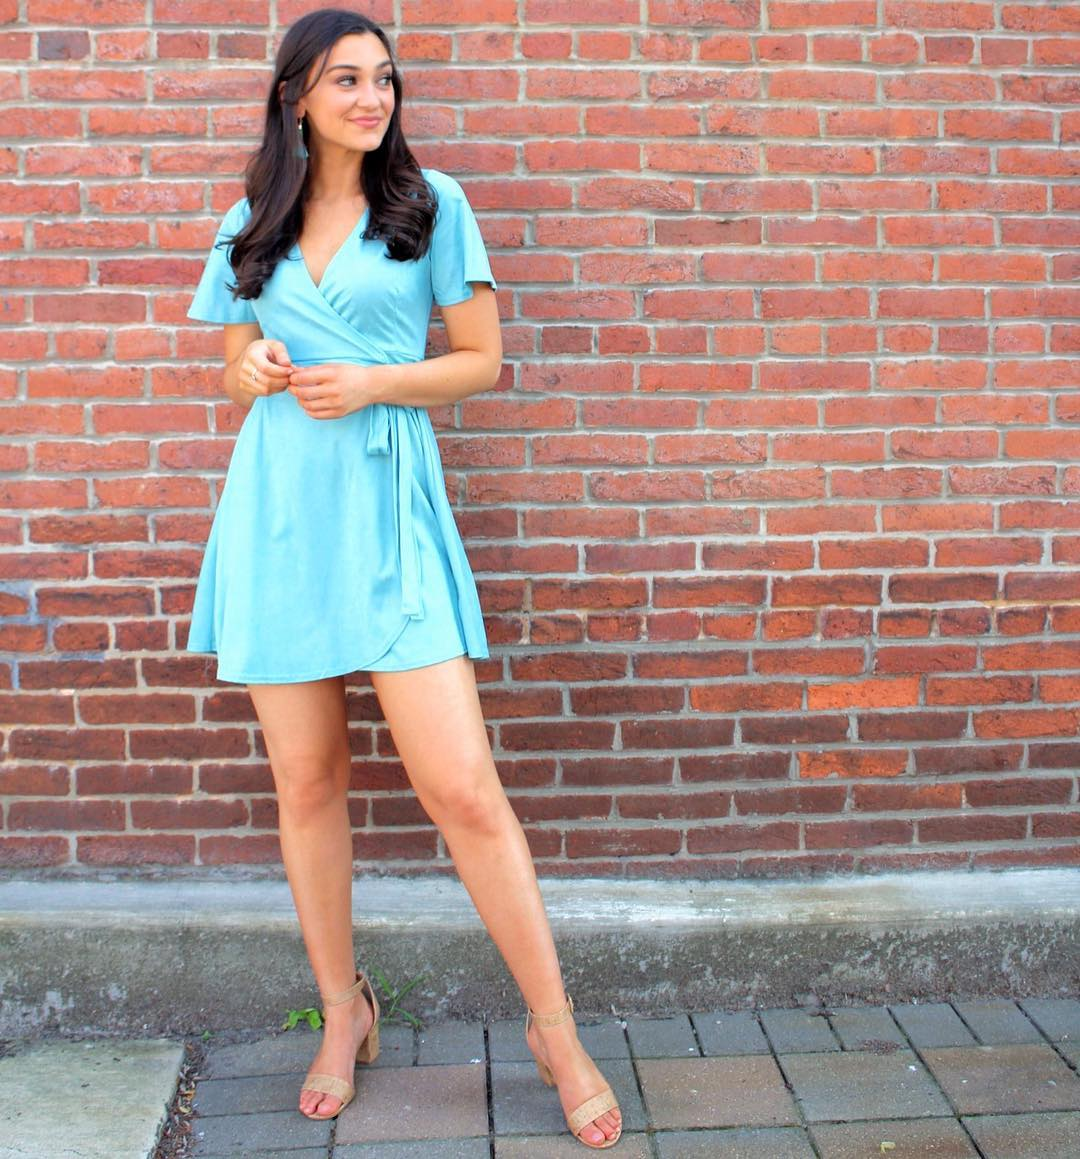 Turquoise dress suitable for daily use